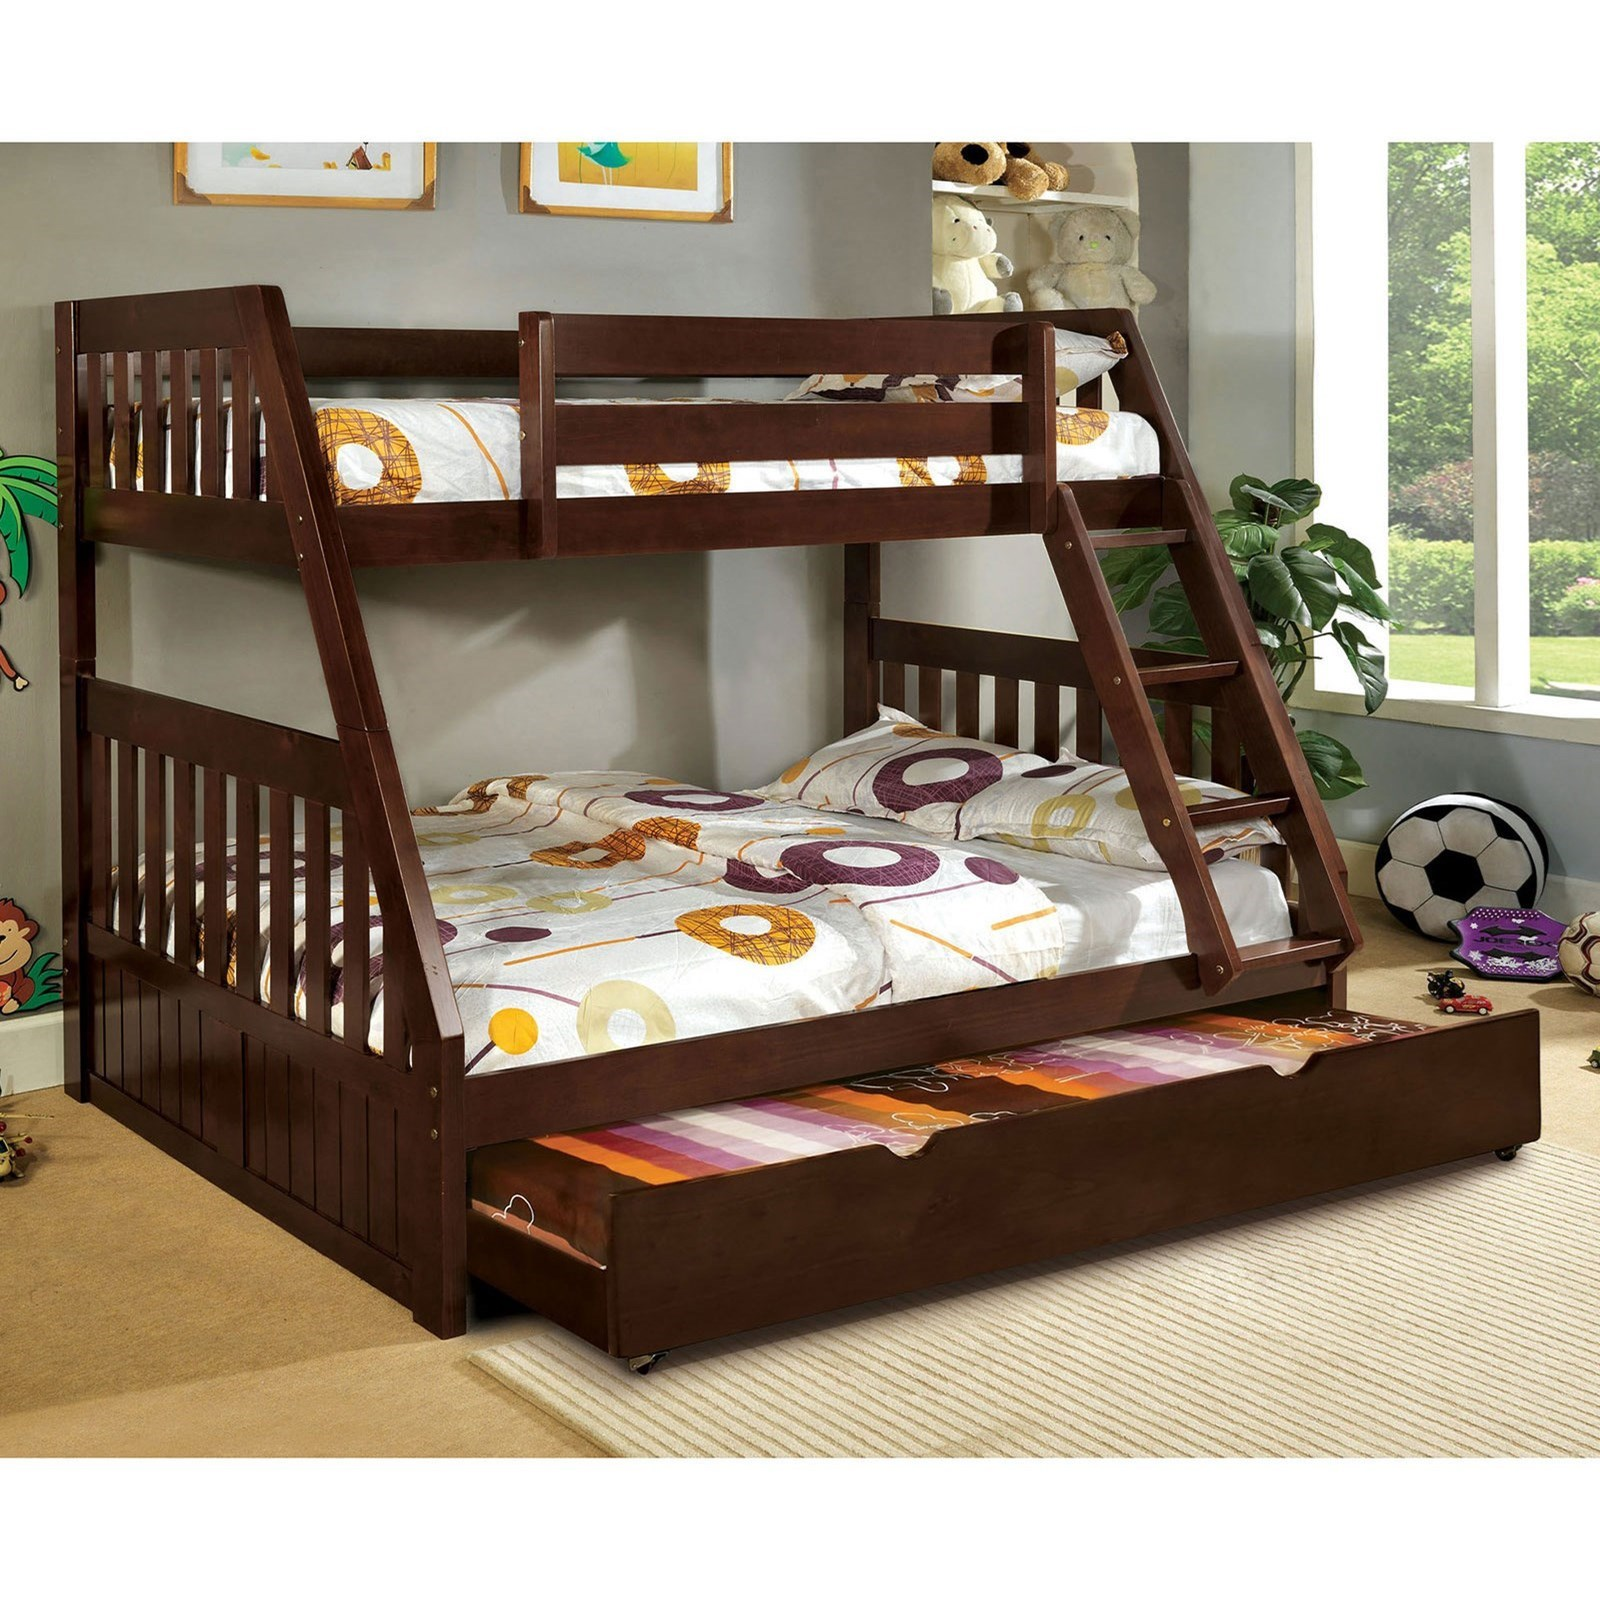 Furniture Stores Canberra Canberra Twin Over Full Bunk Bed By Furniture Of America At Rooms For Less